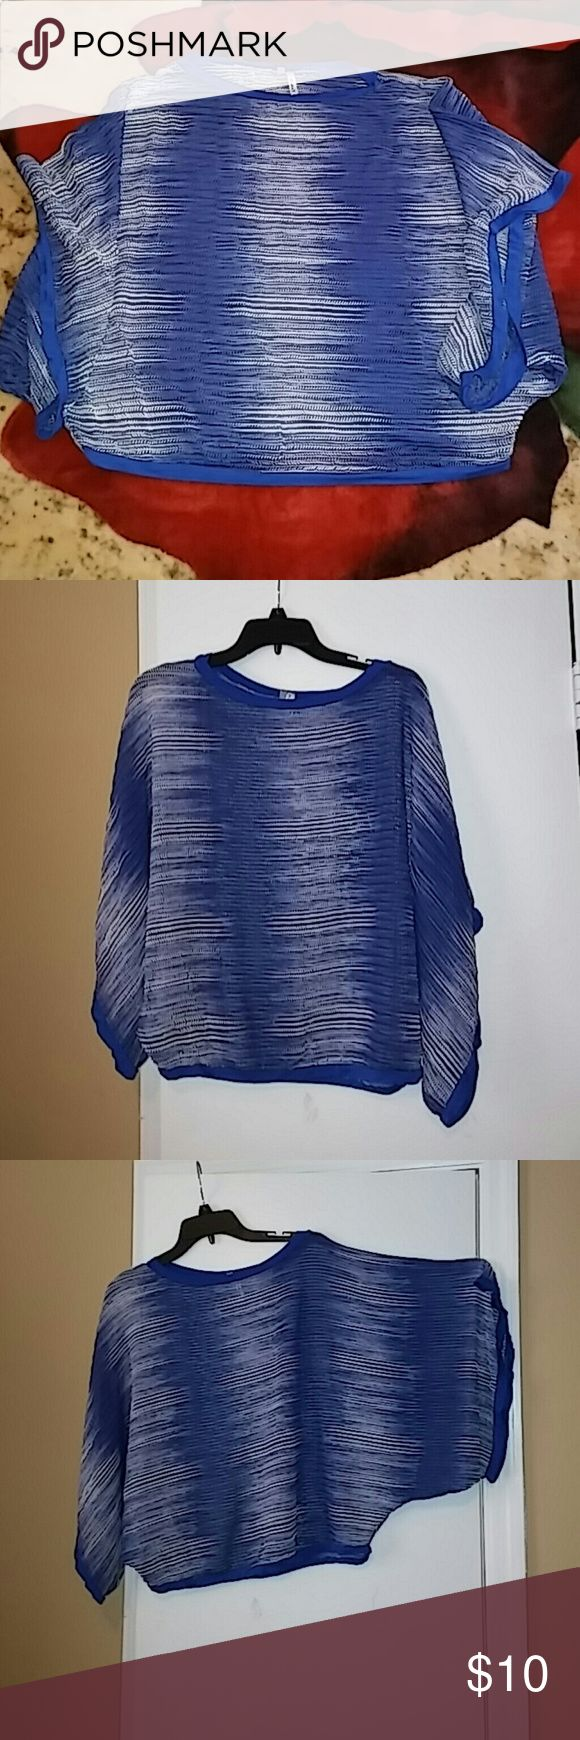 Studio Y batwing top XL Blue and white batwing top Great for hiding arms in spring/summer May need cami to wear underneath 21in long. 42in across EUC Perfect for the spring and summer Smoke& pet free home Studio Y Tops